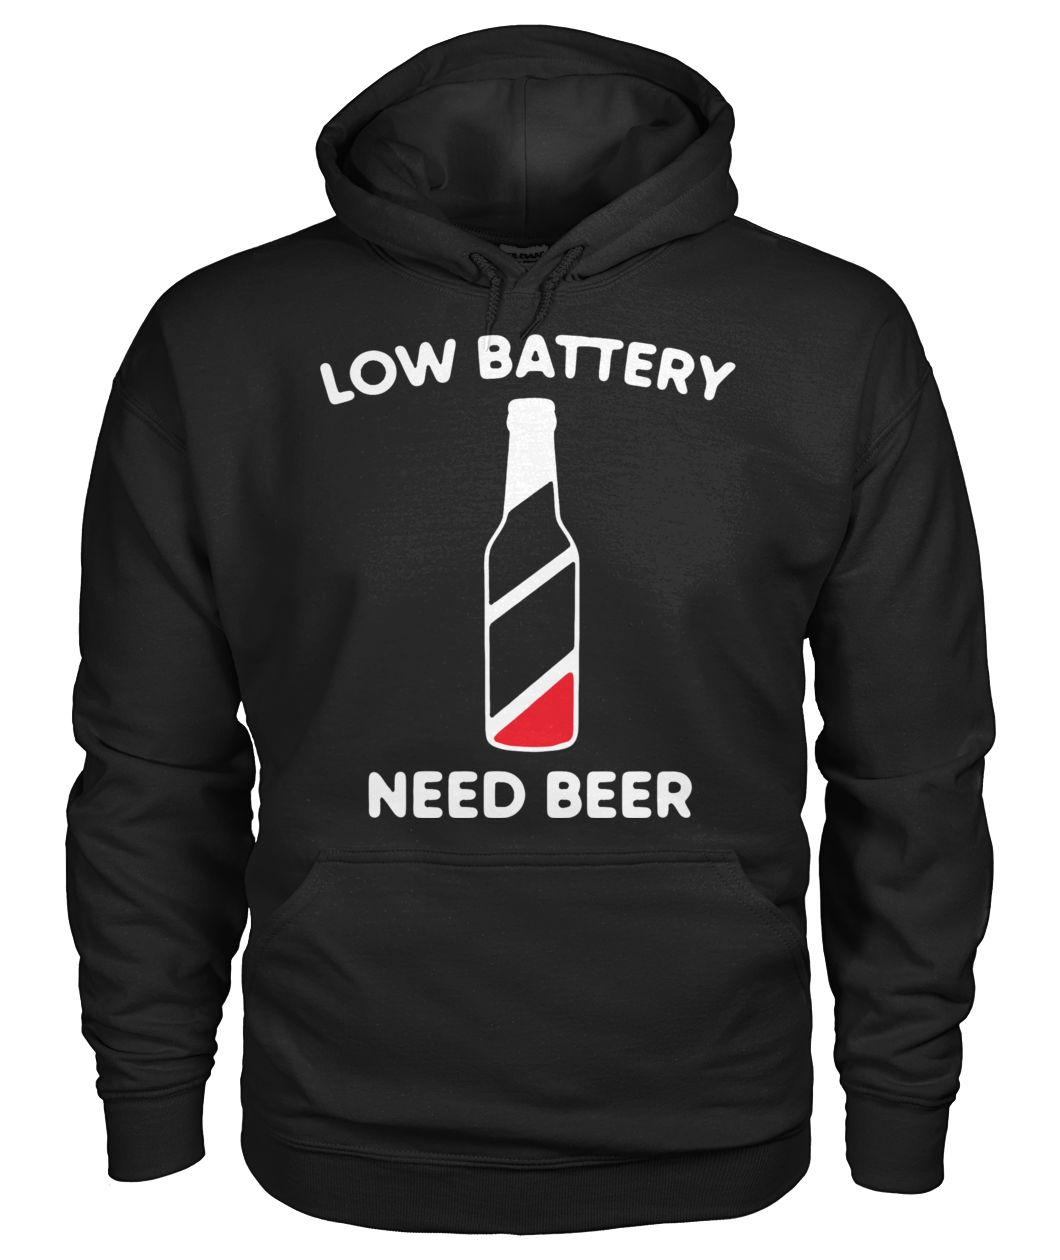 Low battery need beer gildan hoodie